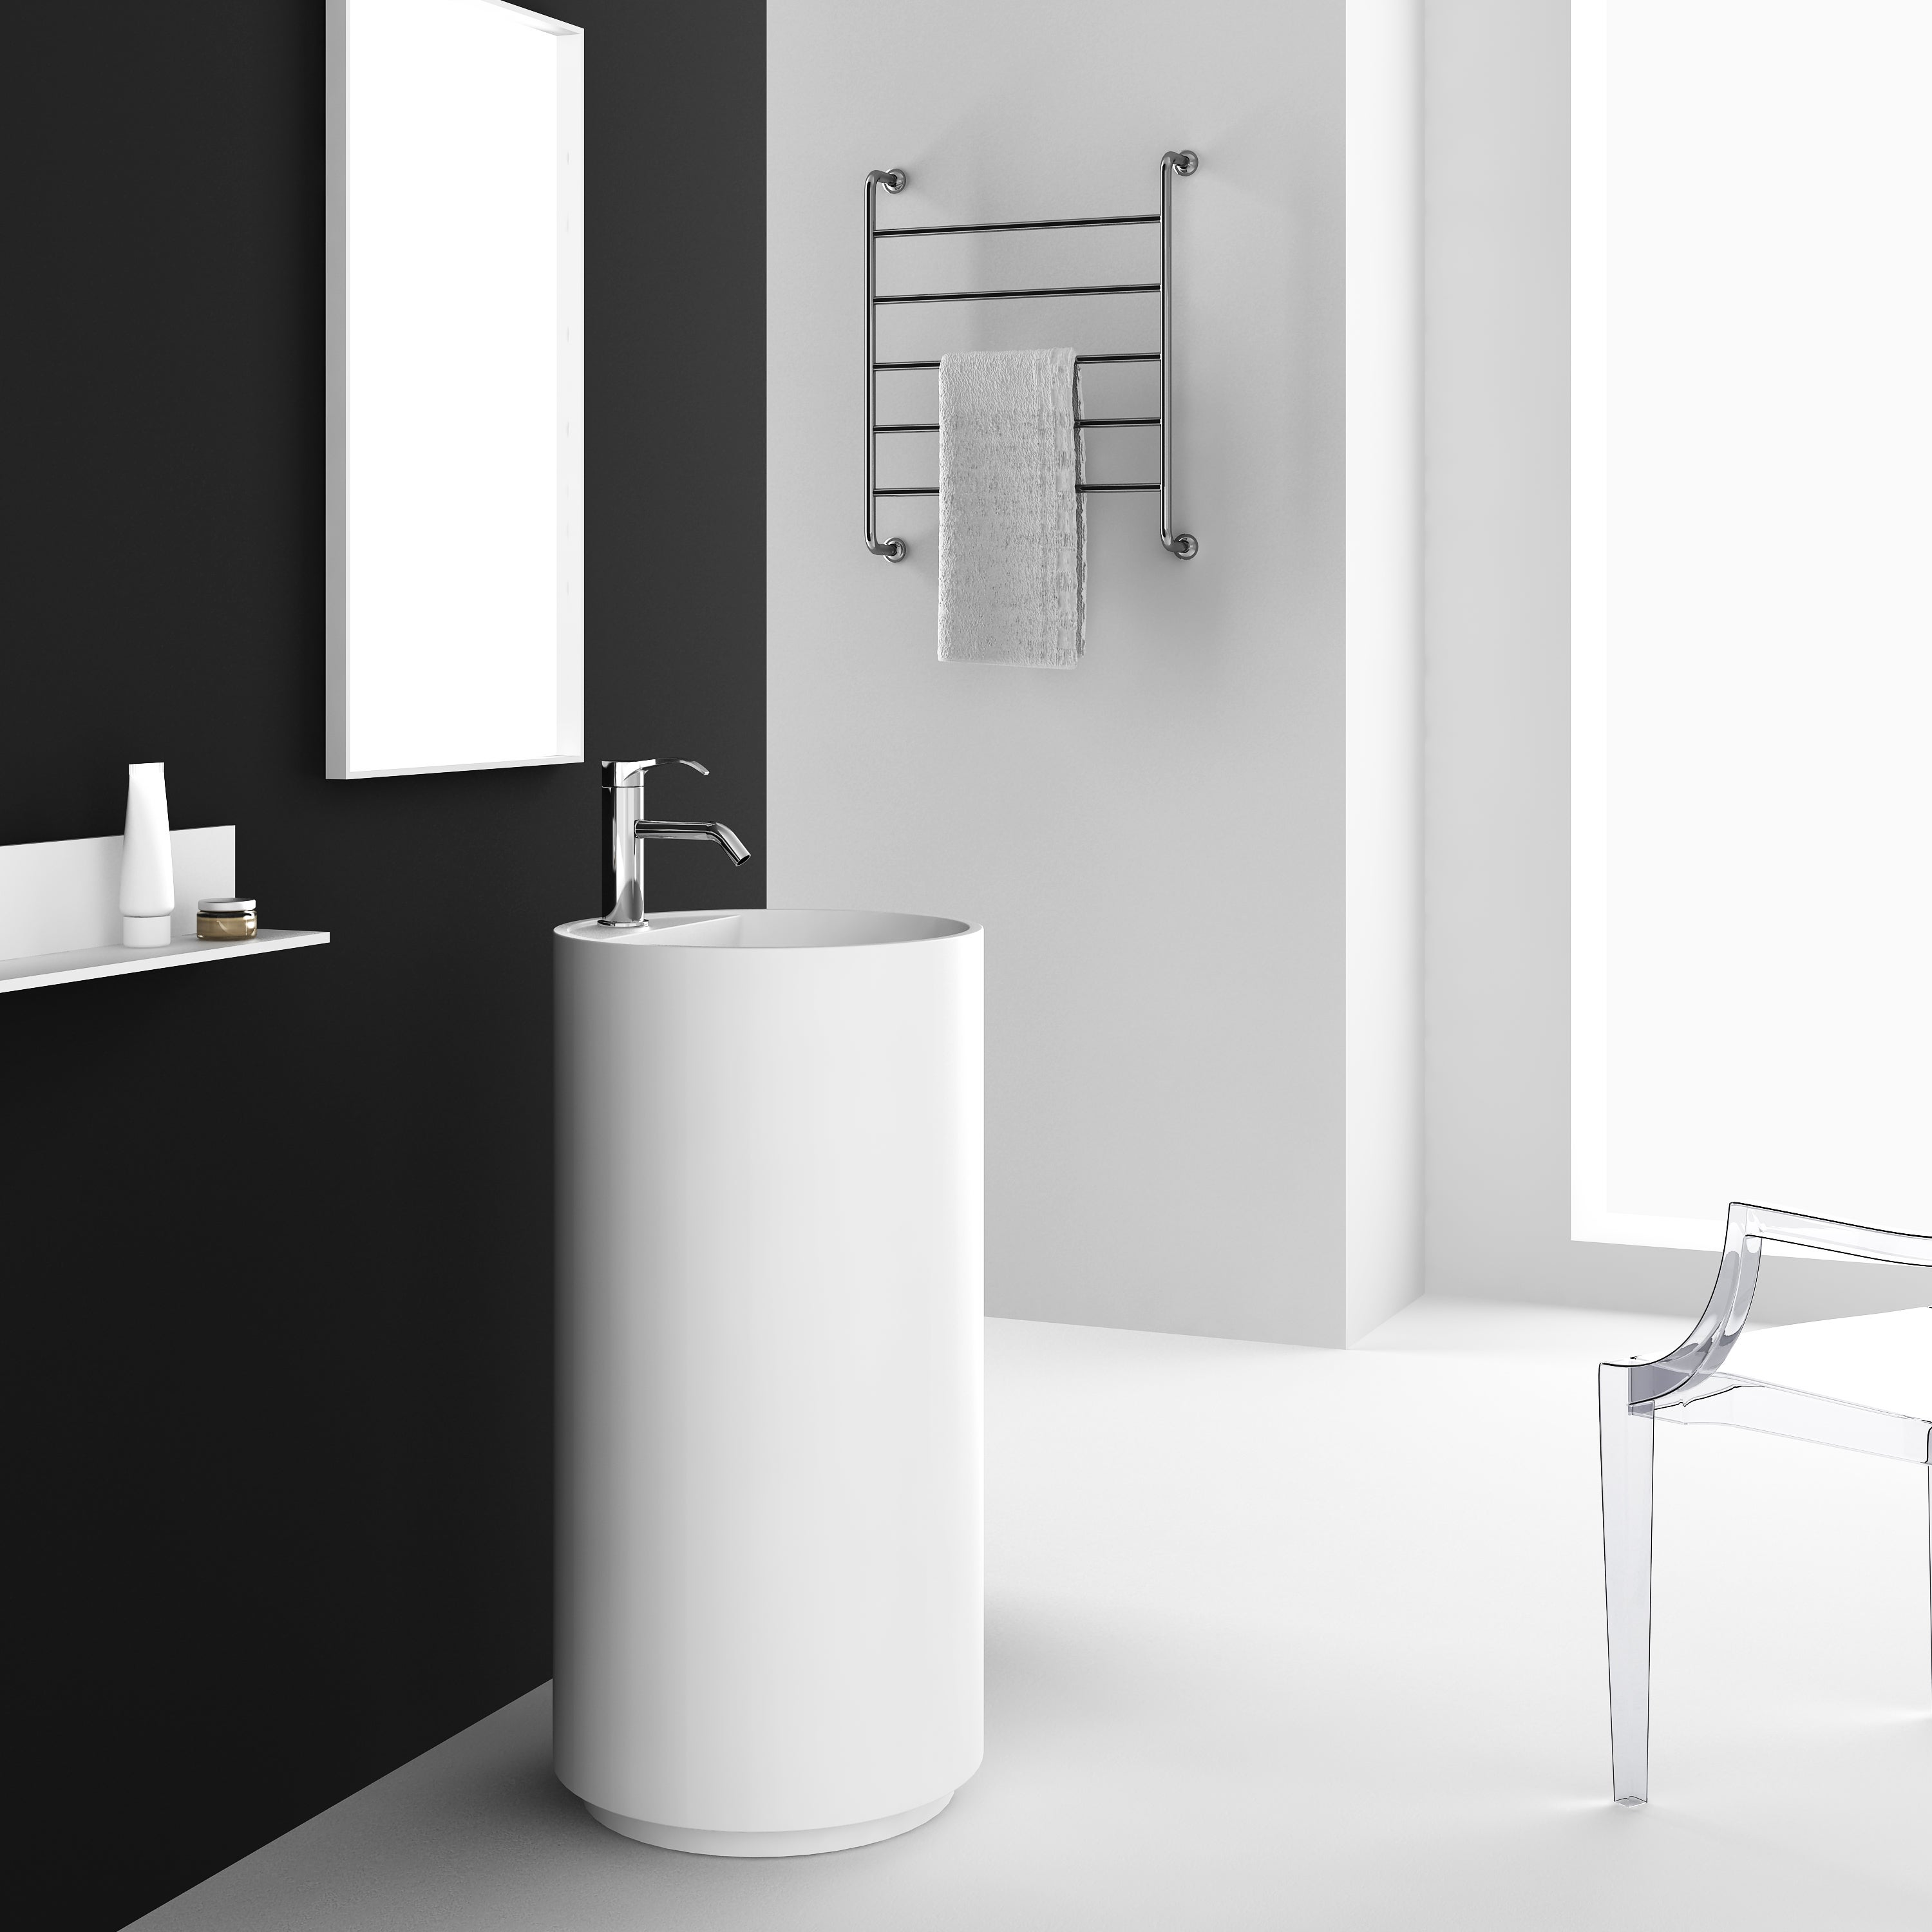 glass menards sinks pedestal storage full white inch picture bathroom concept discounted mesmerizing size sinktoto with of backsplash sink